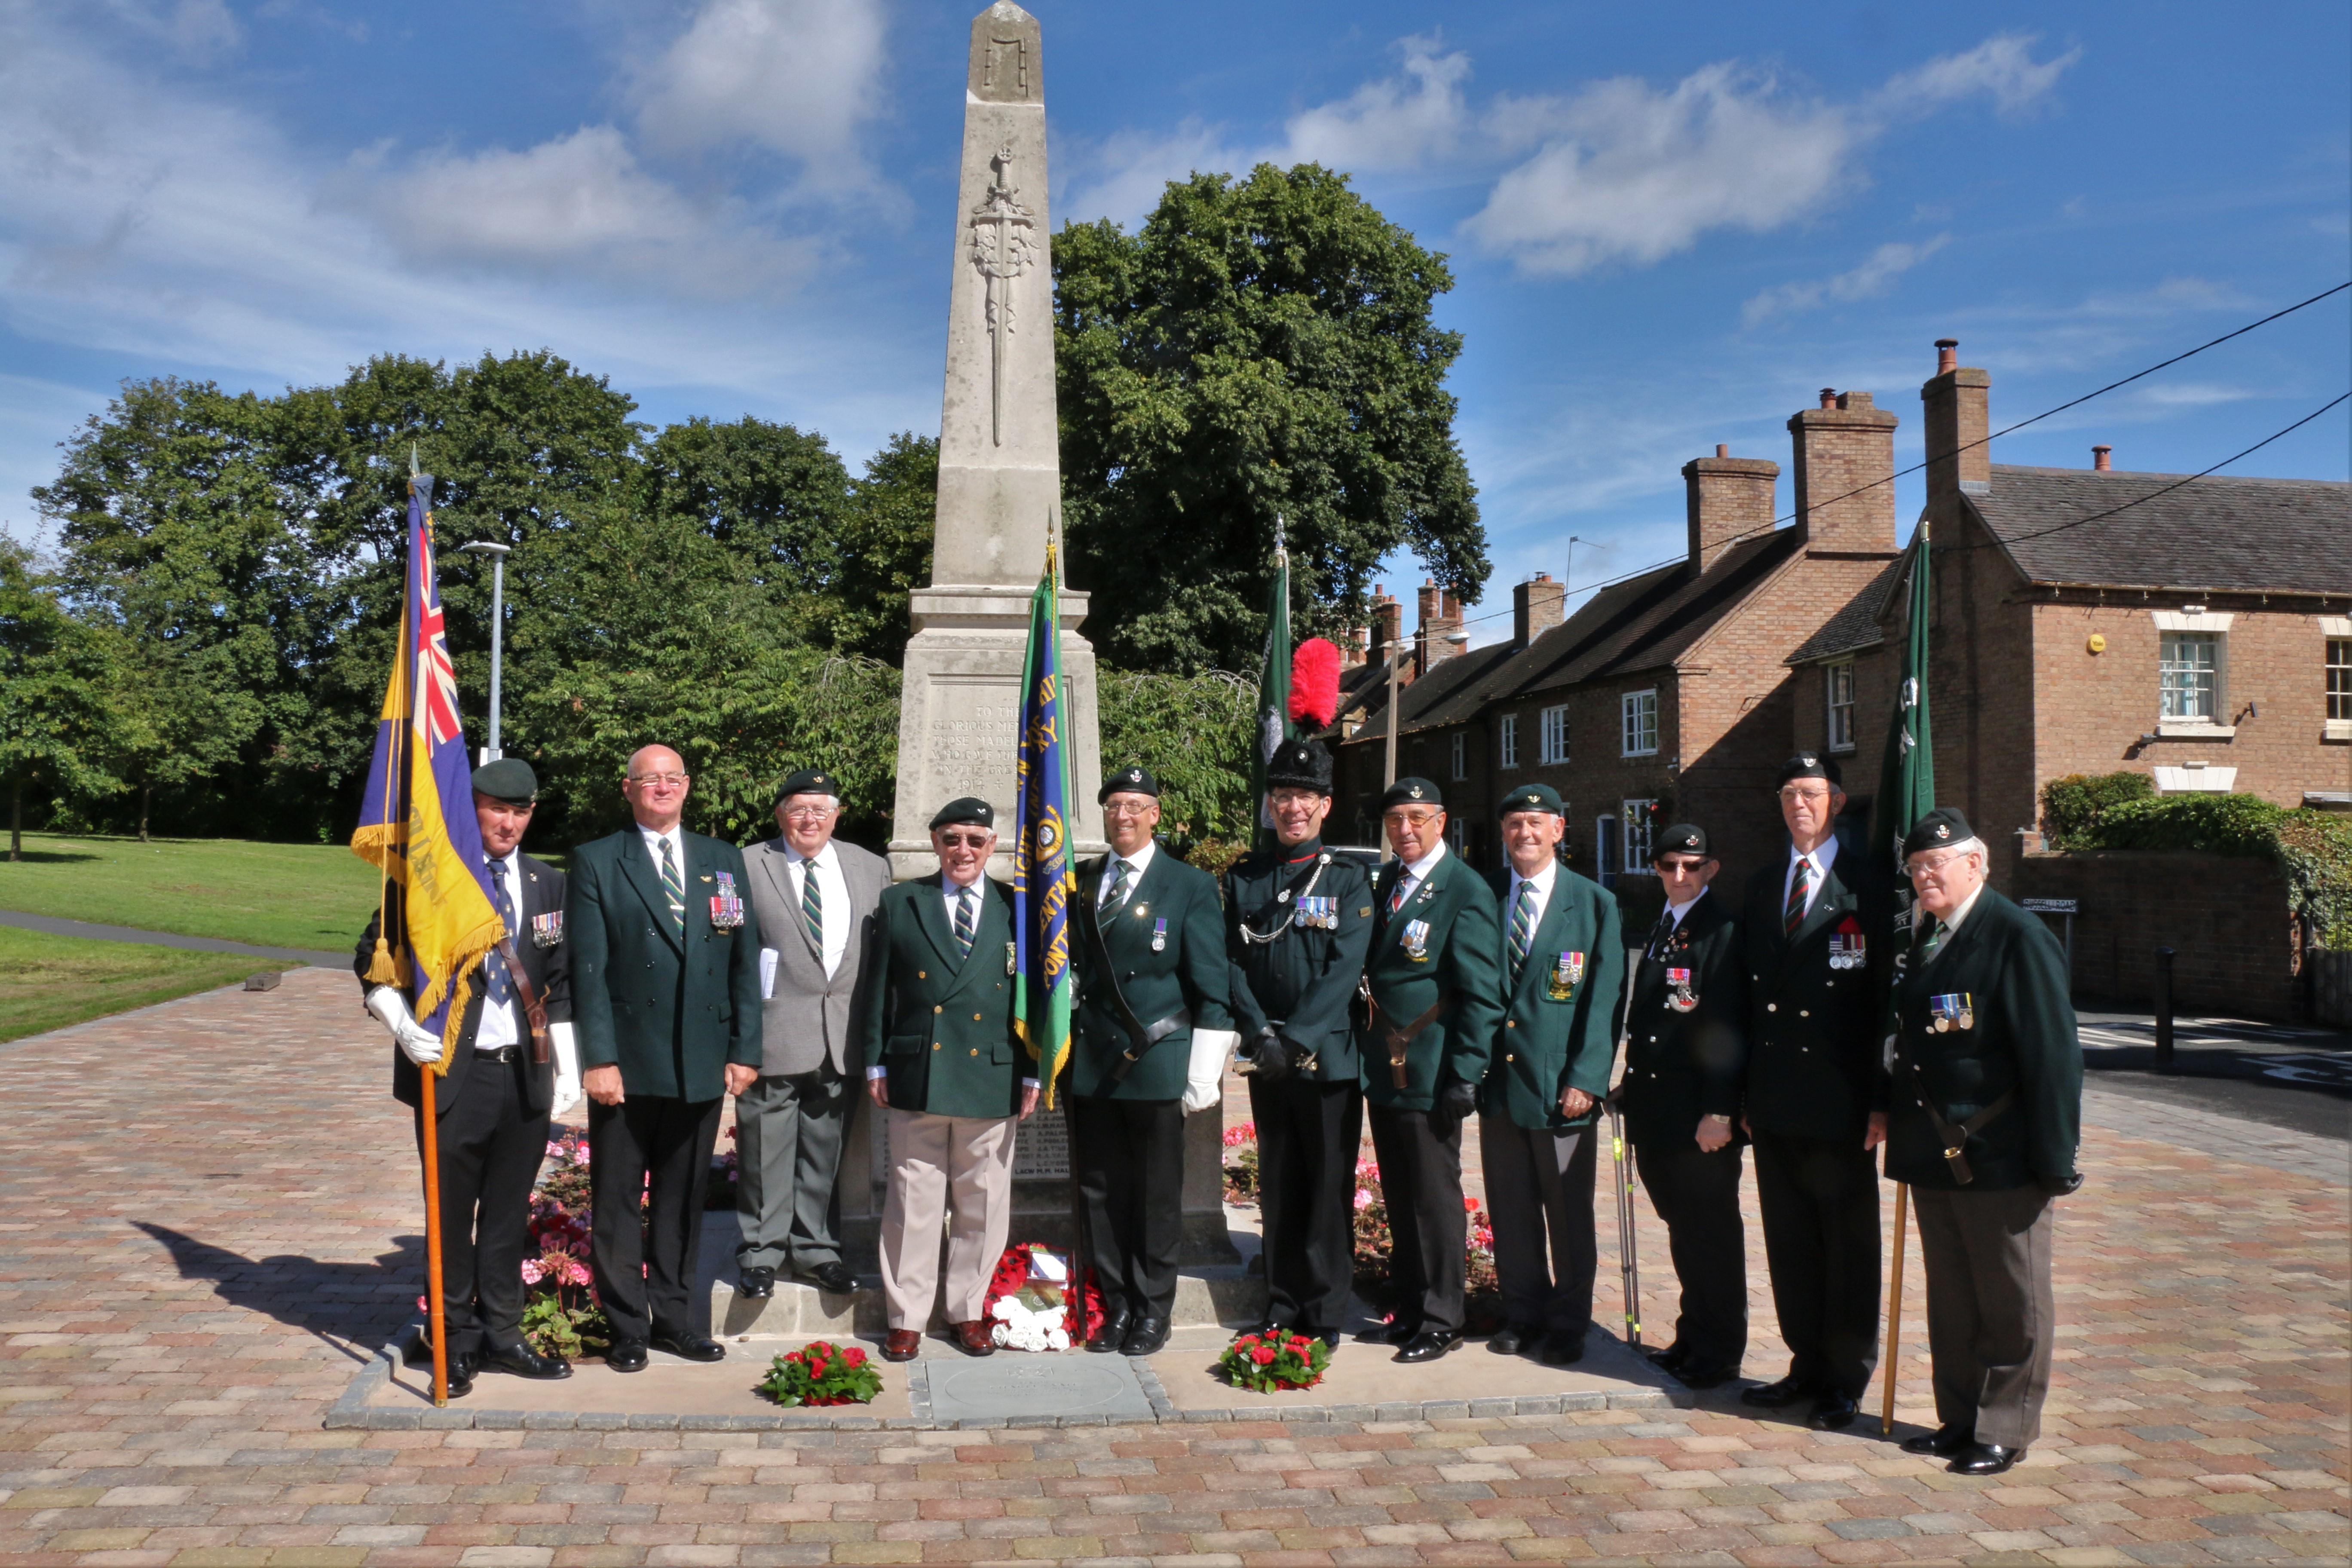 The war memorial in Madeley with members of the King's Own Yorkshire Light Infantry. The memorial and surrounding area were upgraded in 2016 with funding from the Council's Pride in Our High Streets funding scheme